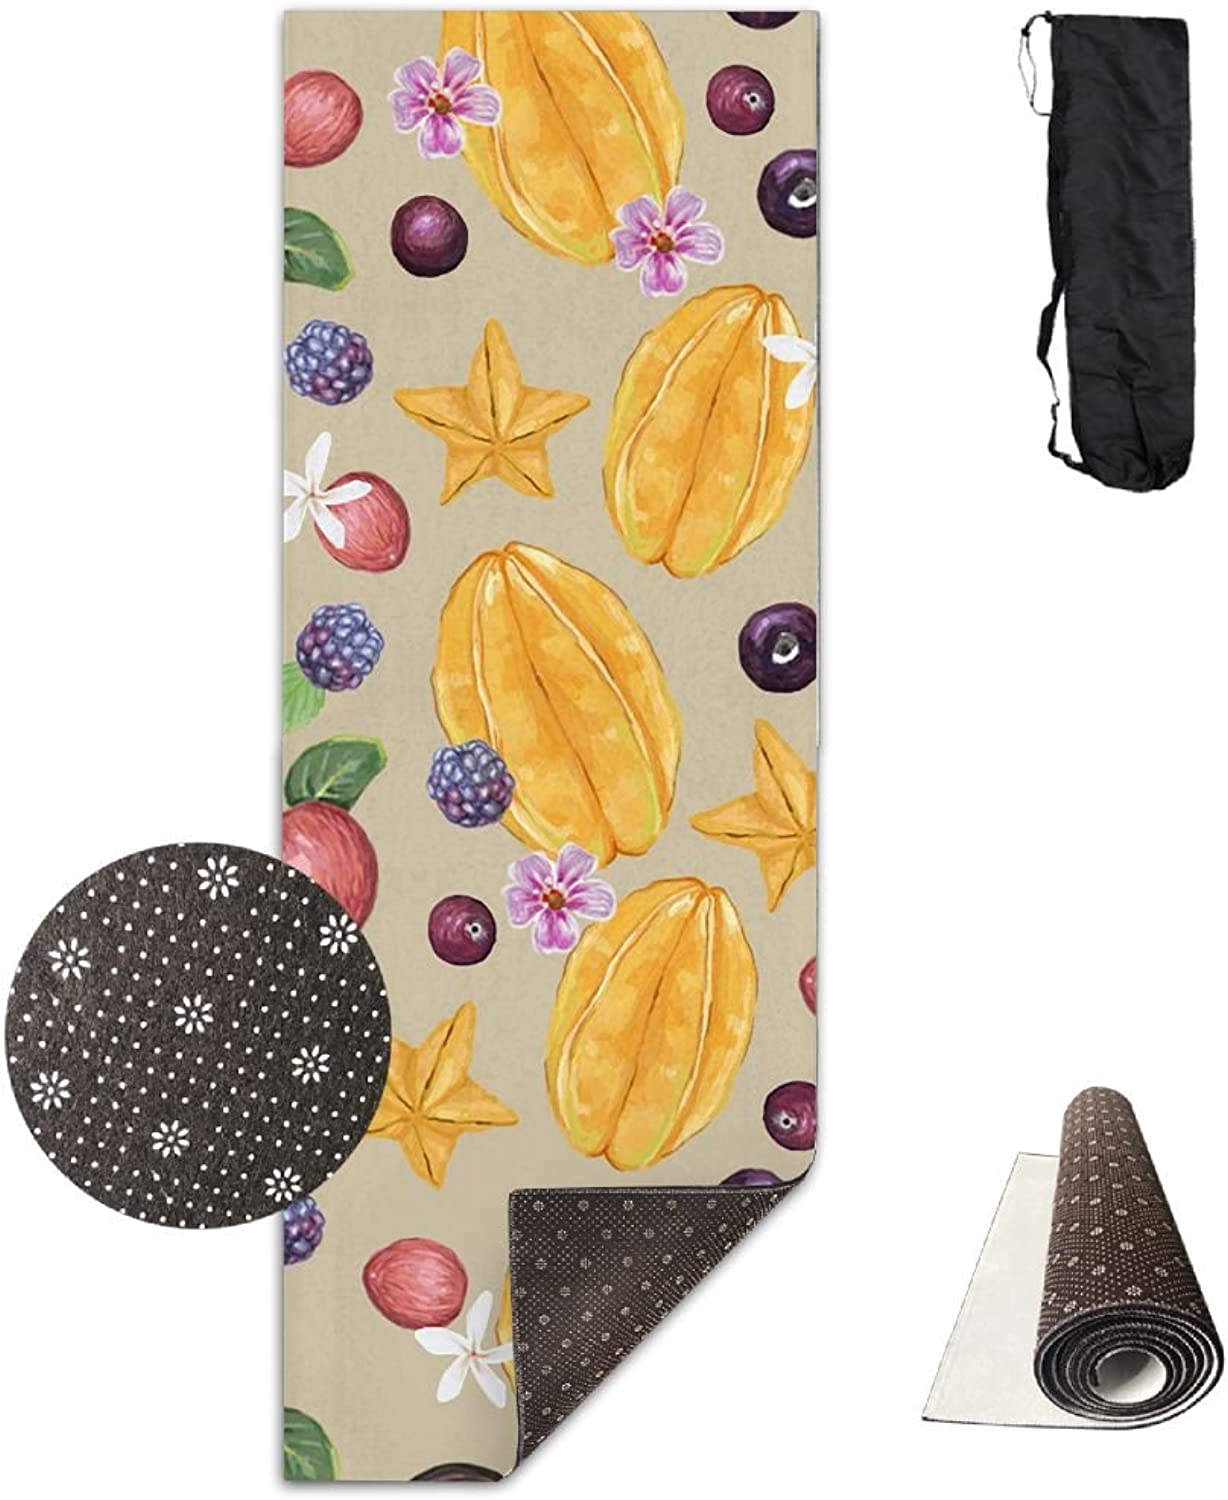 Gym Mat Tropical Fruits Fitness High Density AntiTear Exercise Yoga Mat With Carrying Bag For Exercise,Pilates